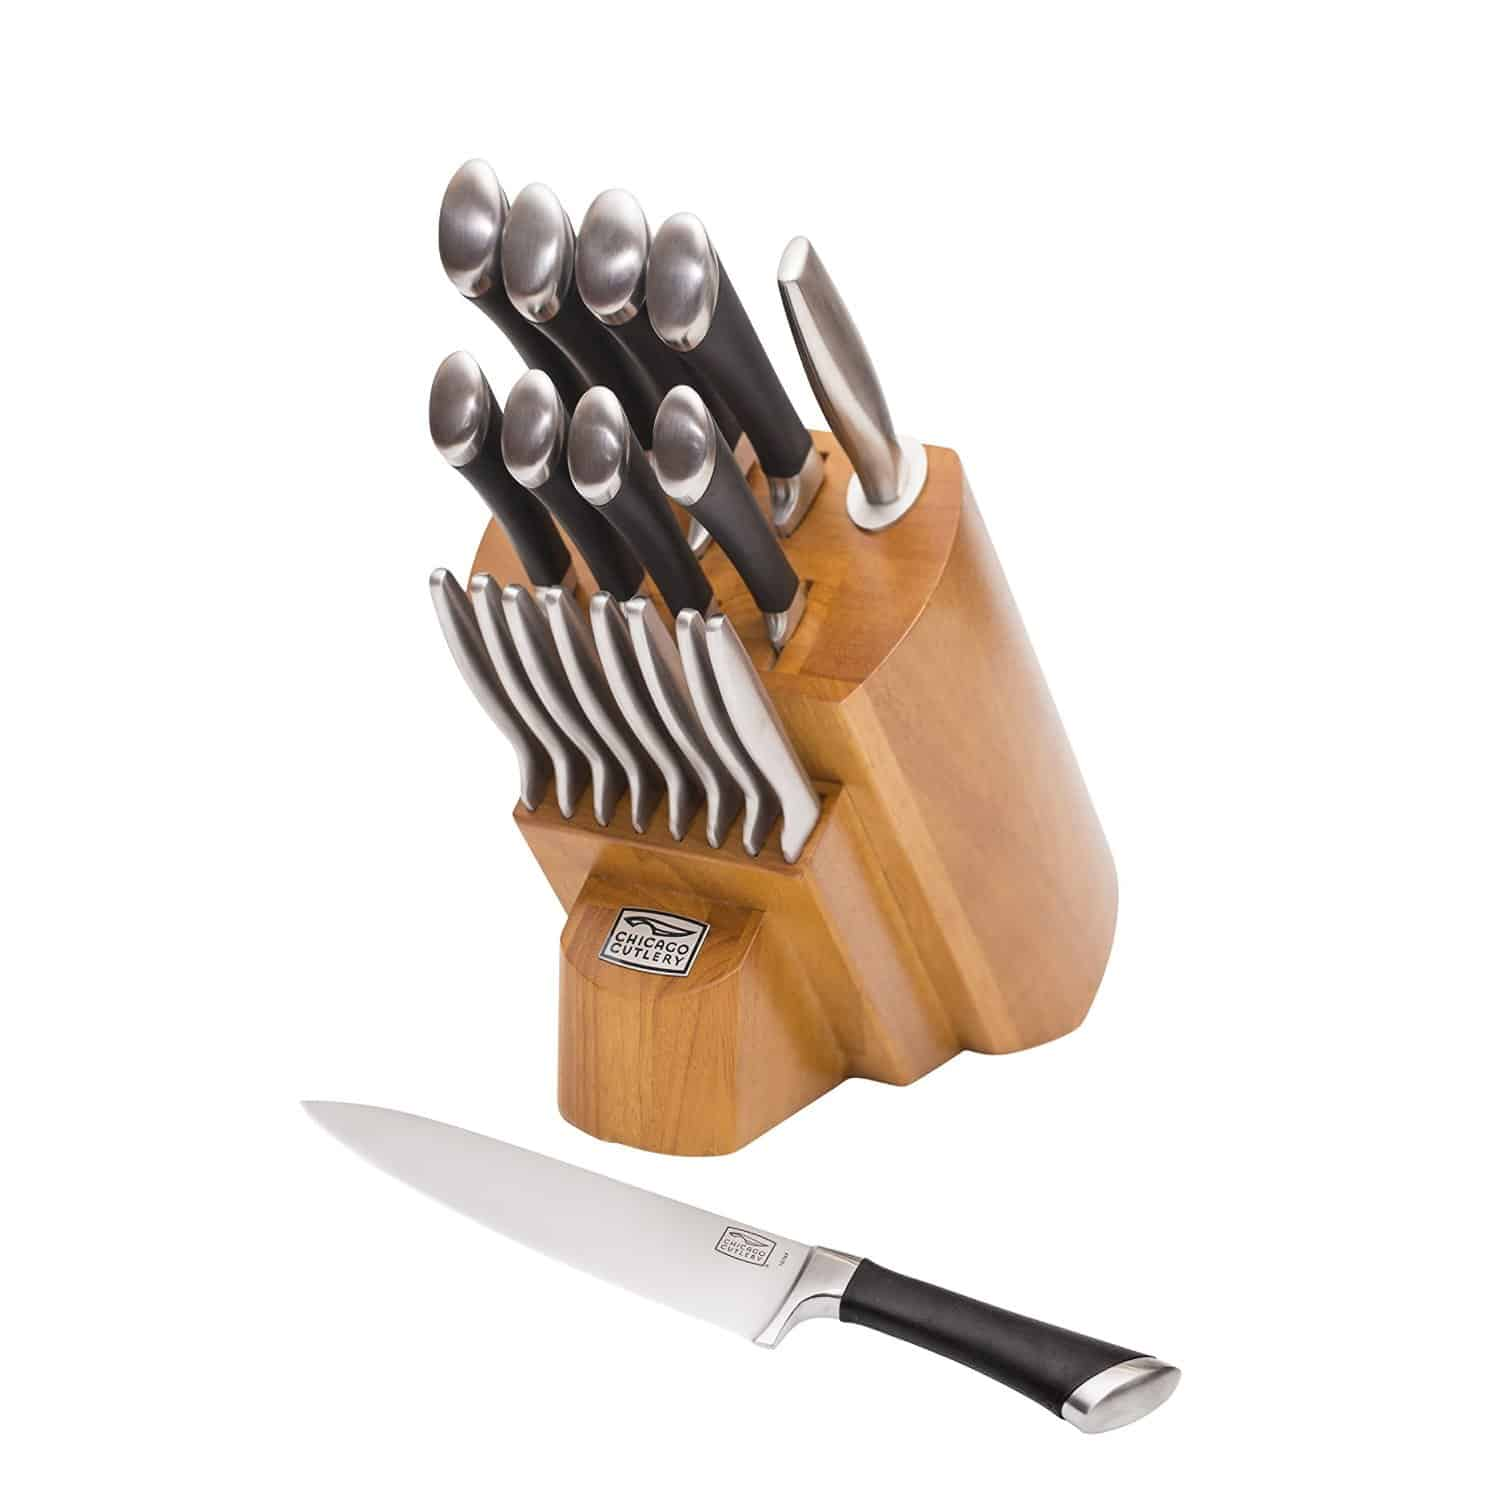 Chicago Cutlery 18-Piece Knife Block Set Review